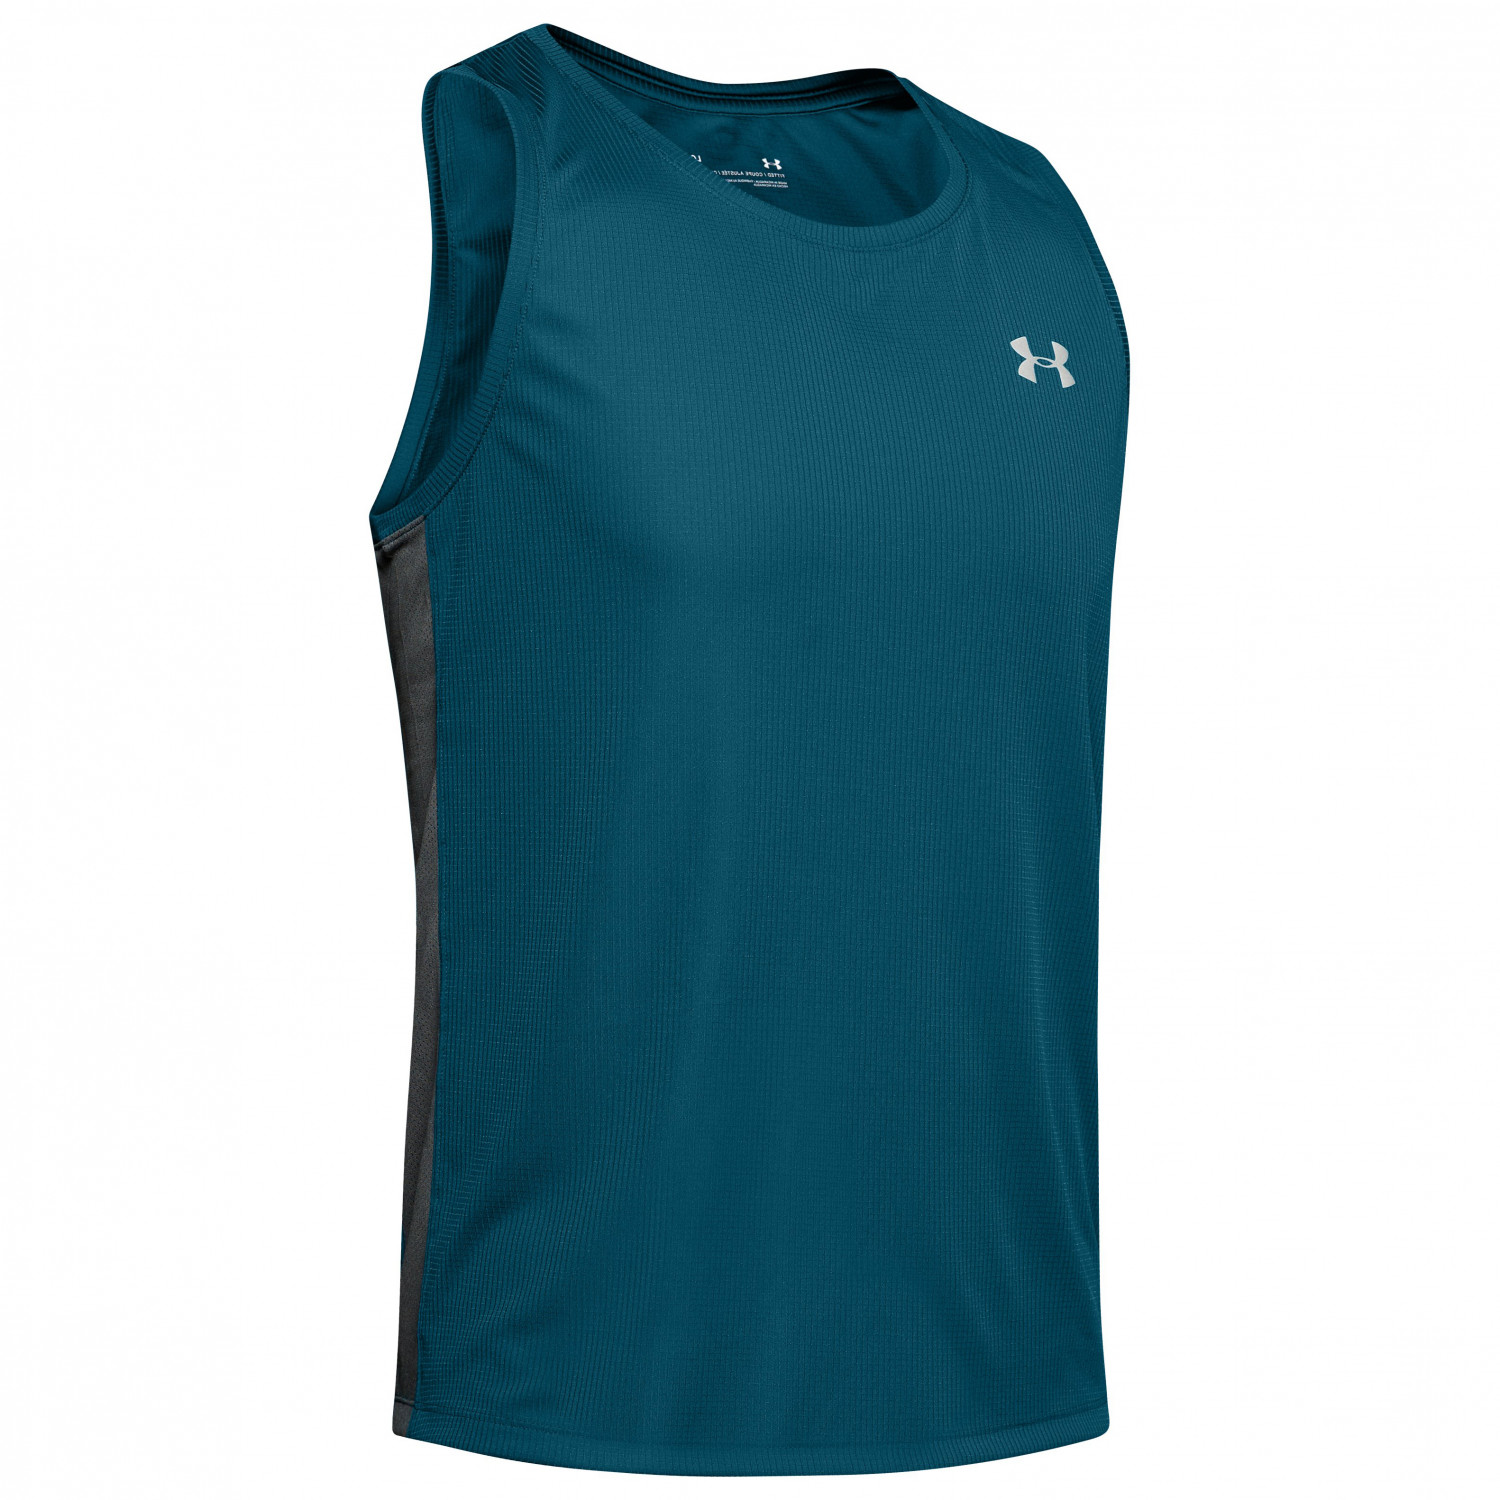 Under Armour UA Speed Stride Singlet Laufshirt Teal Vibe | S